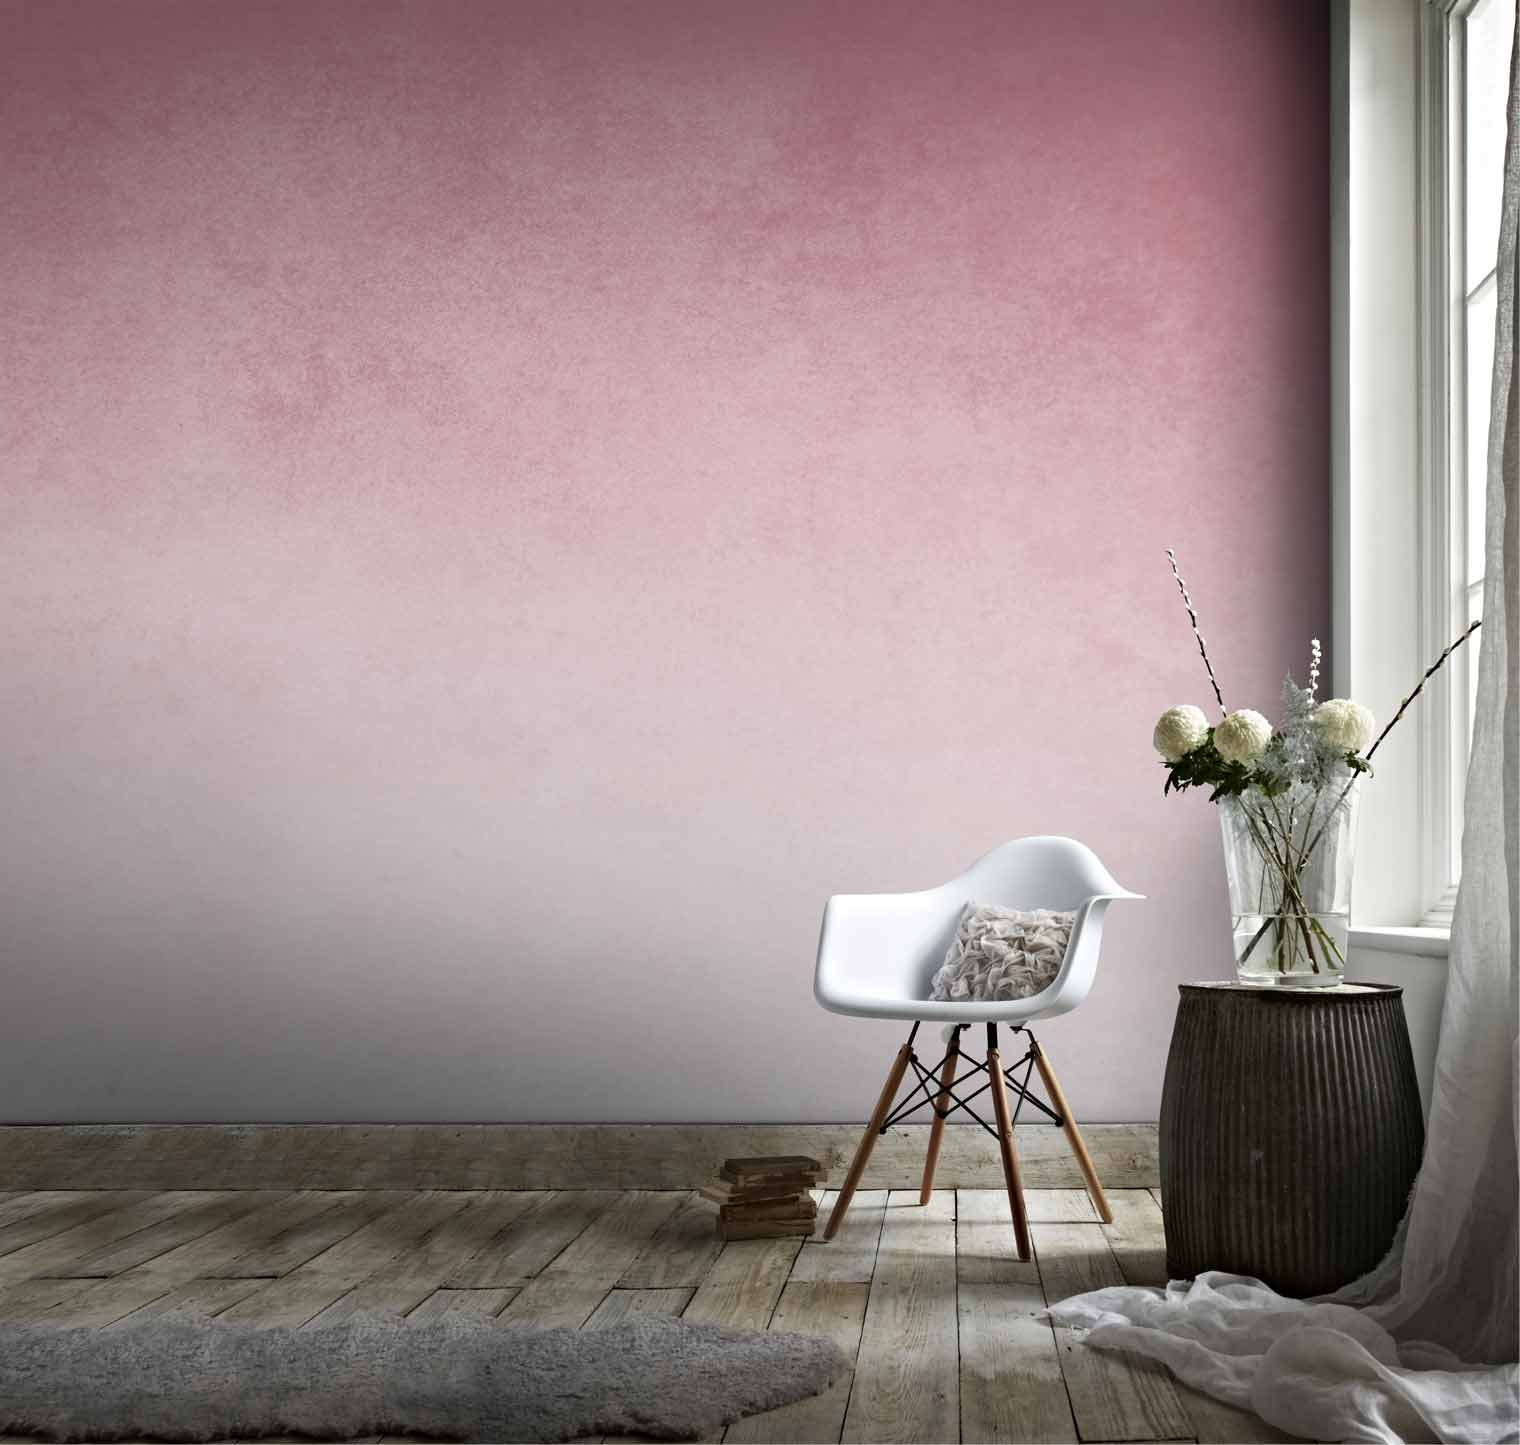 How To Paint An Ombre Wall,Shades Of Dark Purple Hair